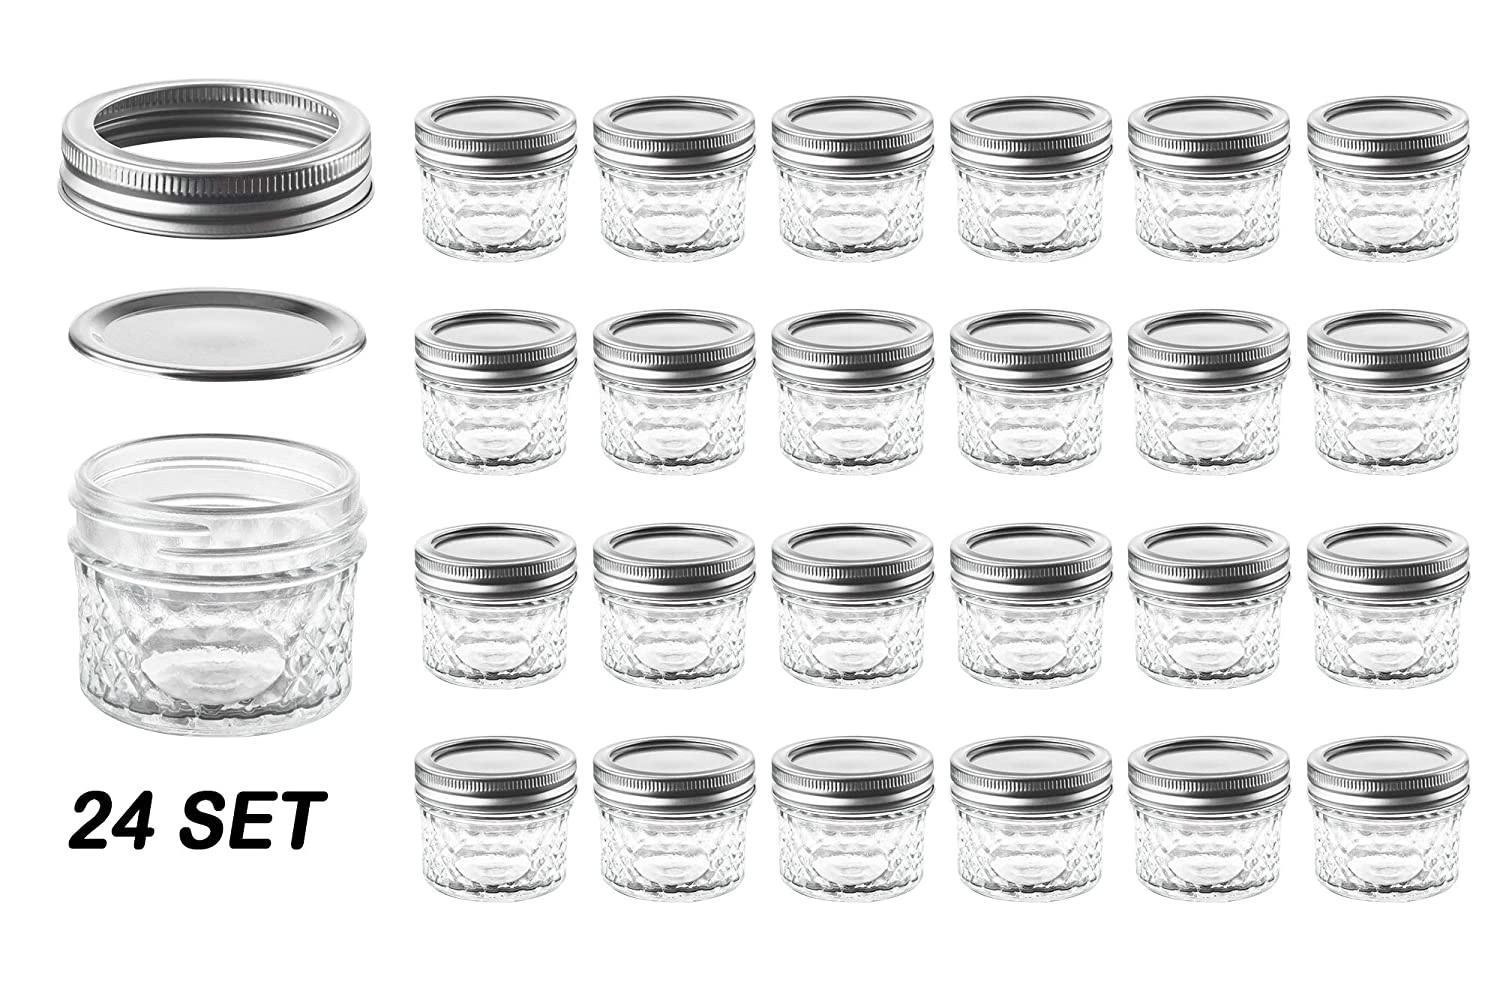 Nellam Quilted Glass Jars with Lids - 4 OZ Wide Mouth Crystal Jelly Glasses, Set of 24 Silver, for Canning, Preserving Food - each Mini Mason Jar is Freezer, Microwave, and Oven Proof